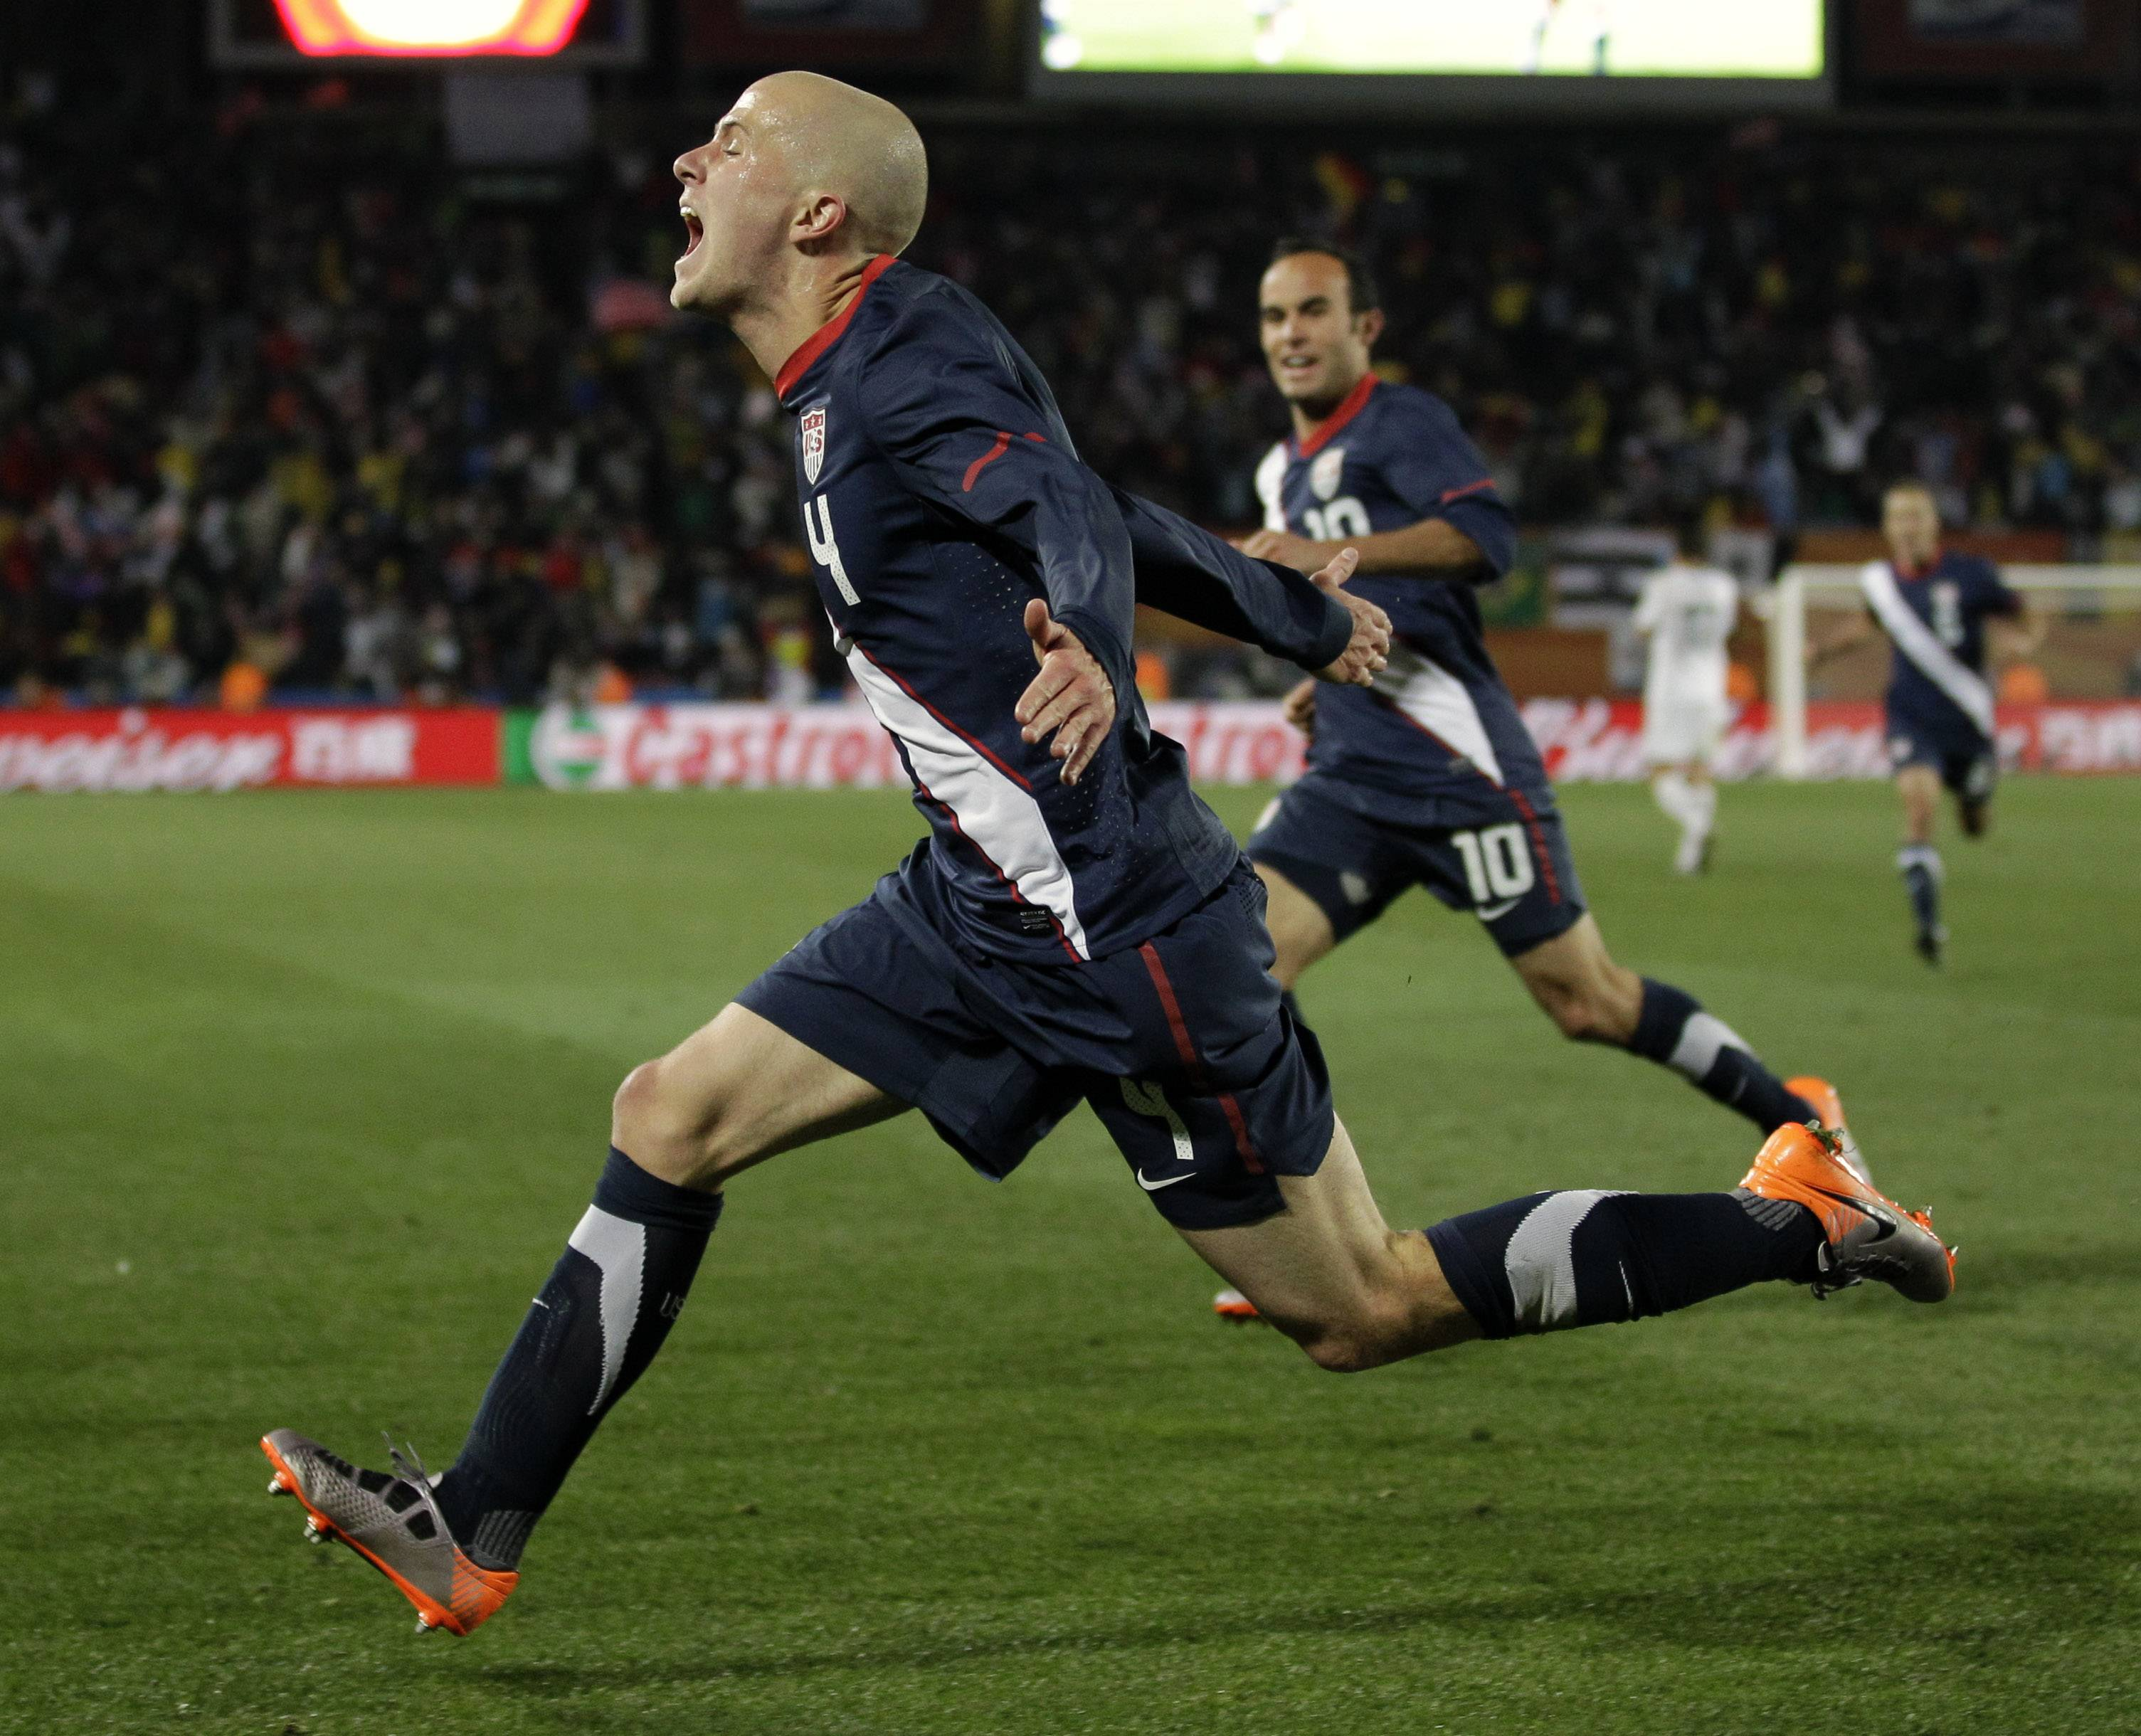 Michael Bradley, foreground, who is the son of former Chicago Fire coach Bob Bradley and a former Palatine resident, might be the Americans' most important player in the World Cup. The United States opens World Cup Group G play against Ghana on Monday.